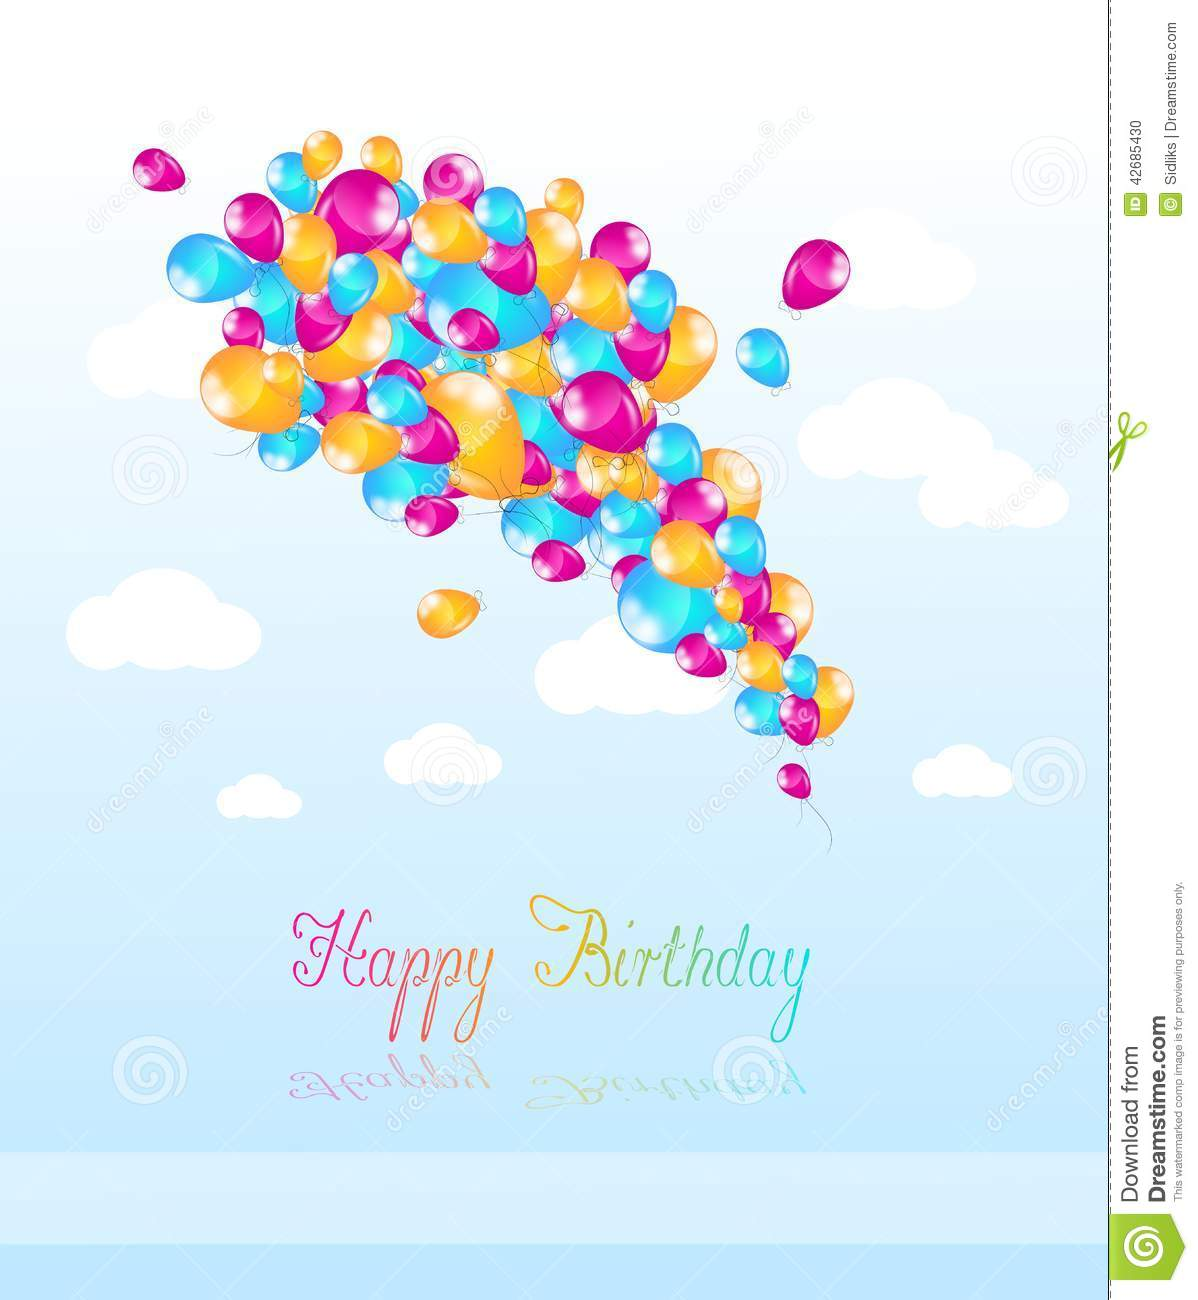 Permalink to Happy Birthday Inflatable